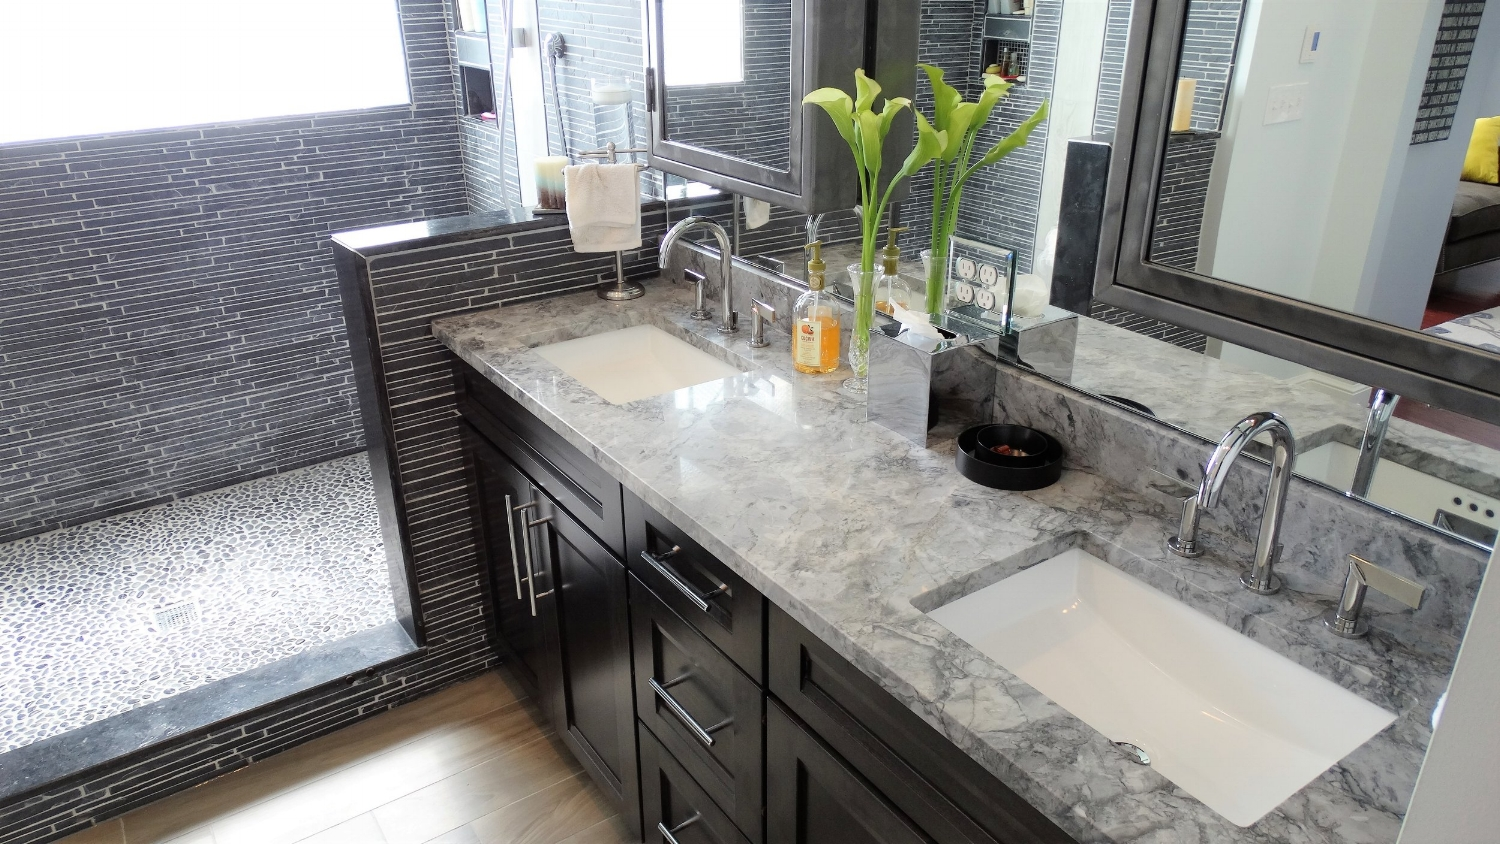 bathroom-remodel-slate-tile-walk-in-vanity-pebble-grout-design.jpg